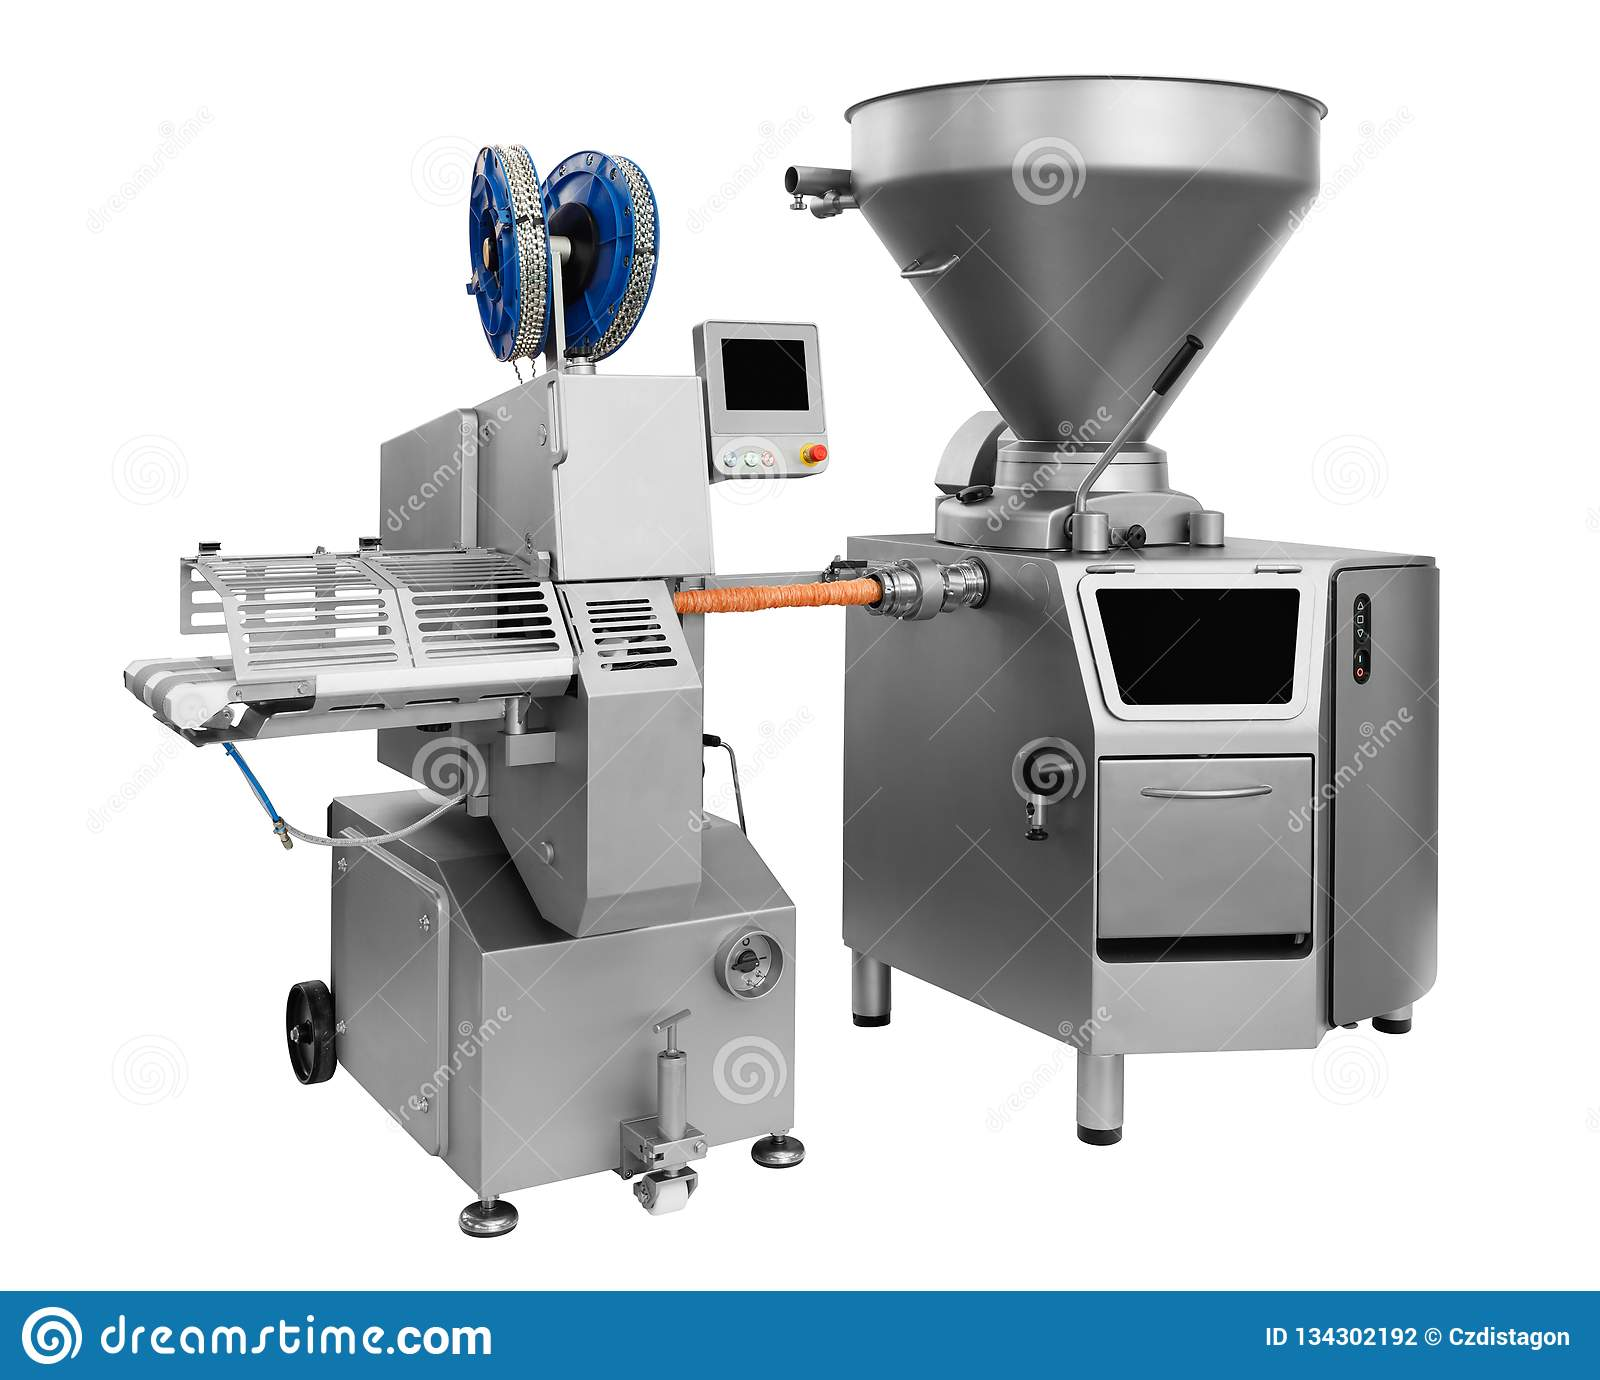 Industrial mixer in food industry, production line in food factory line conveyor machine solated on white background